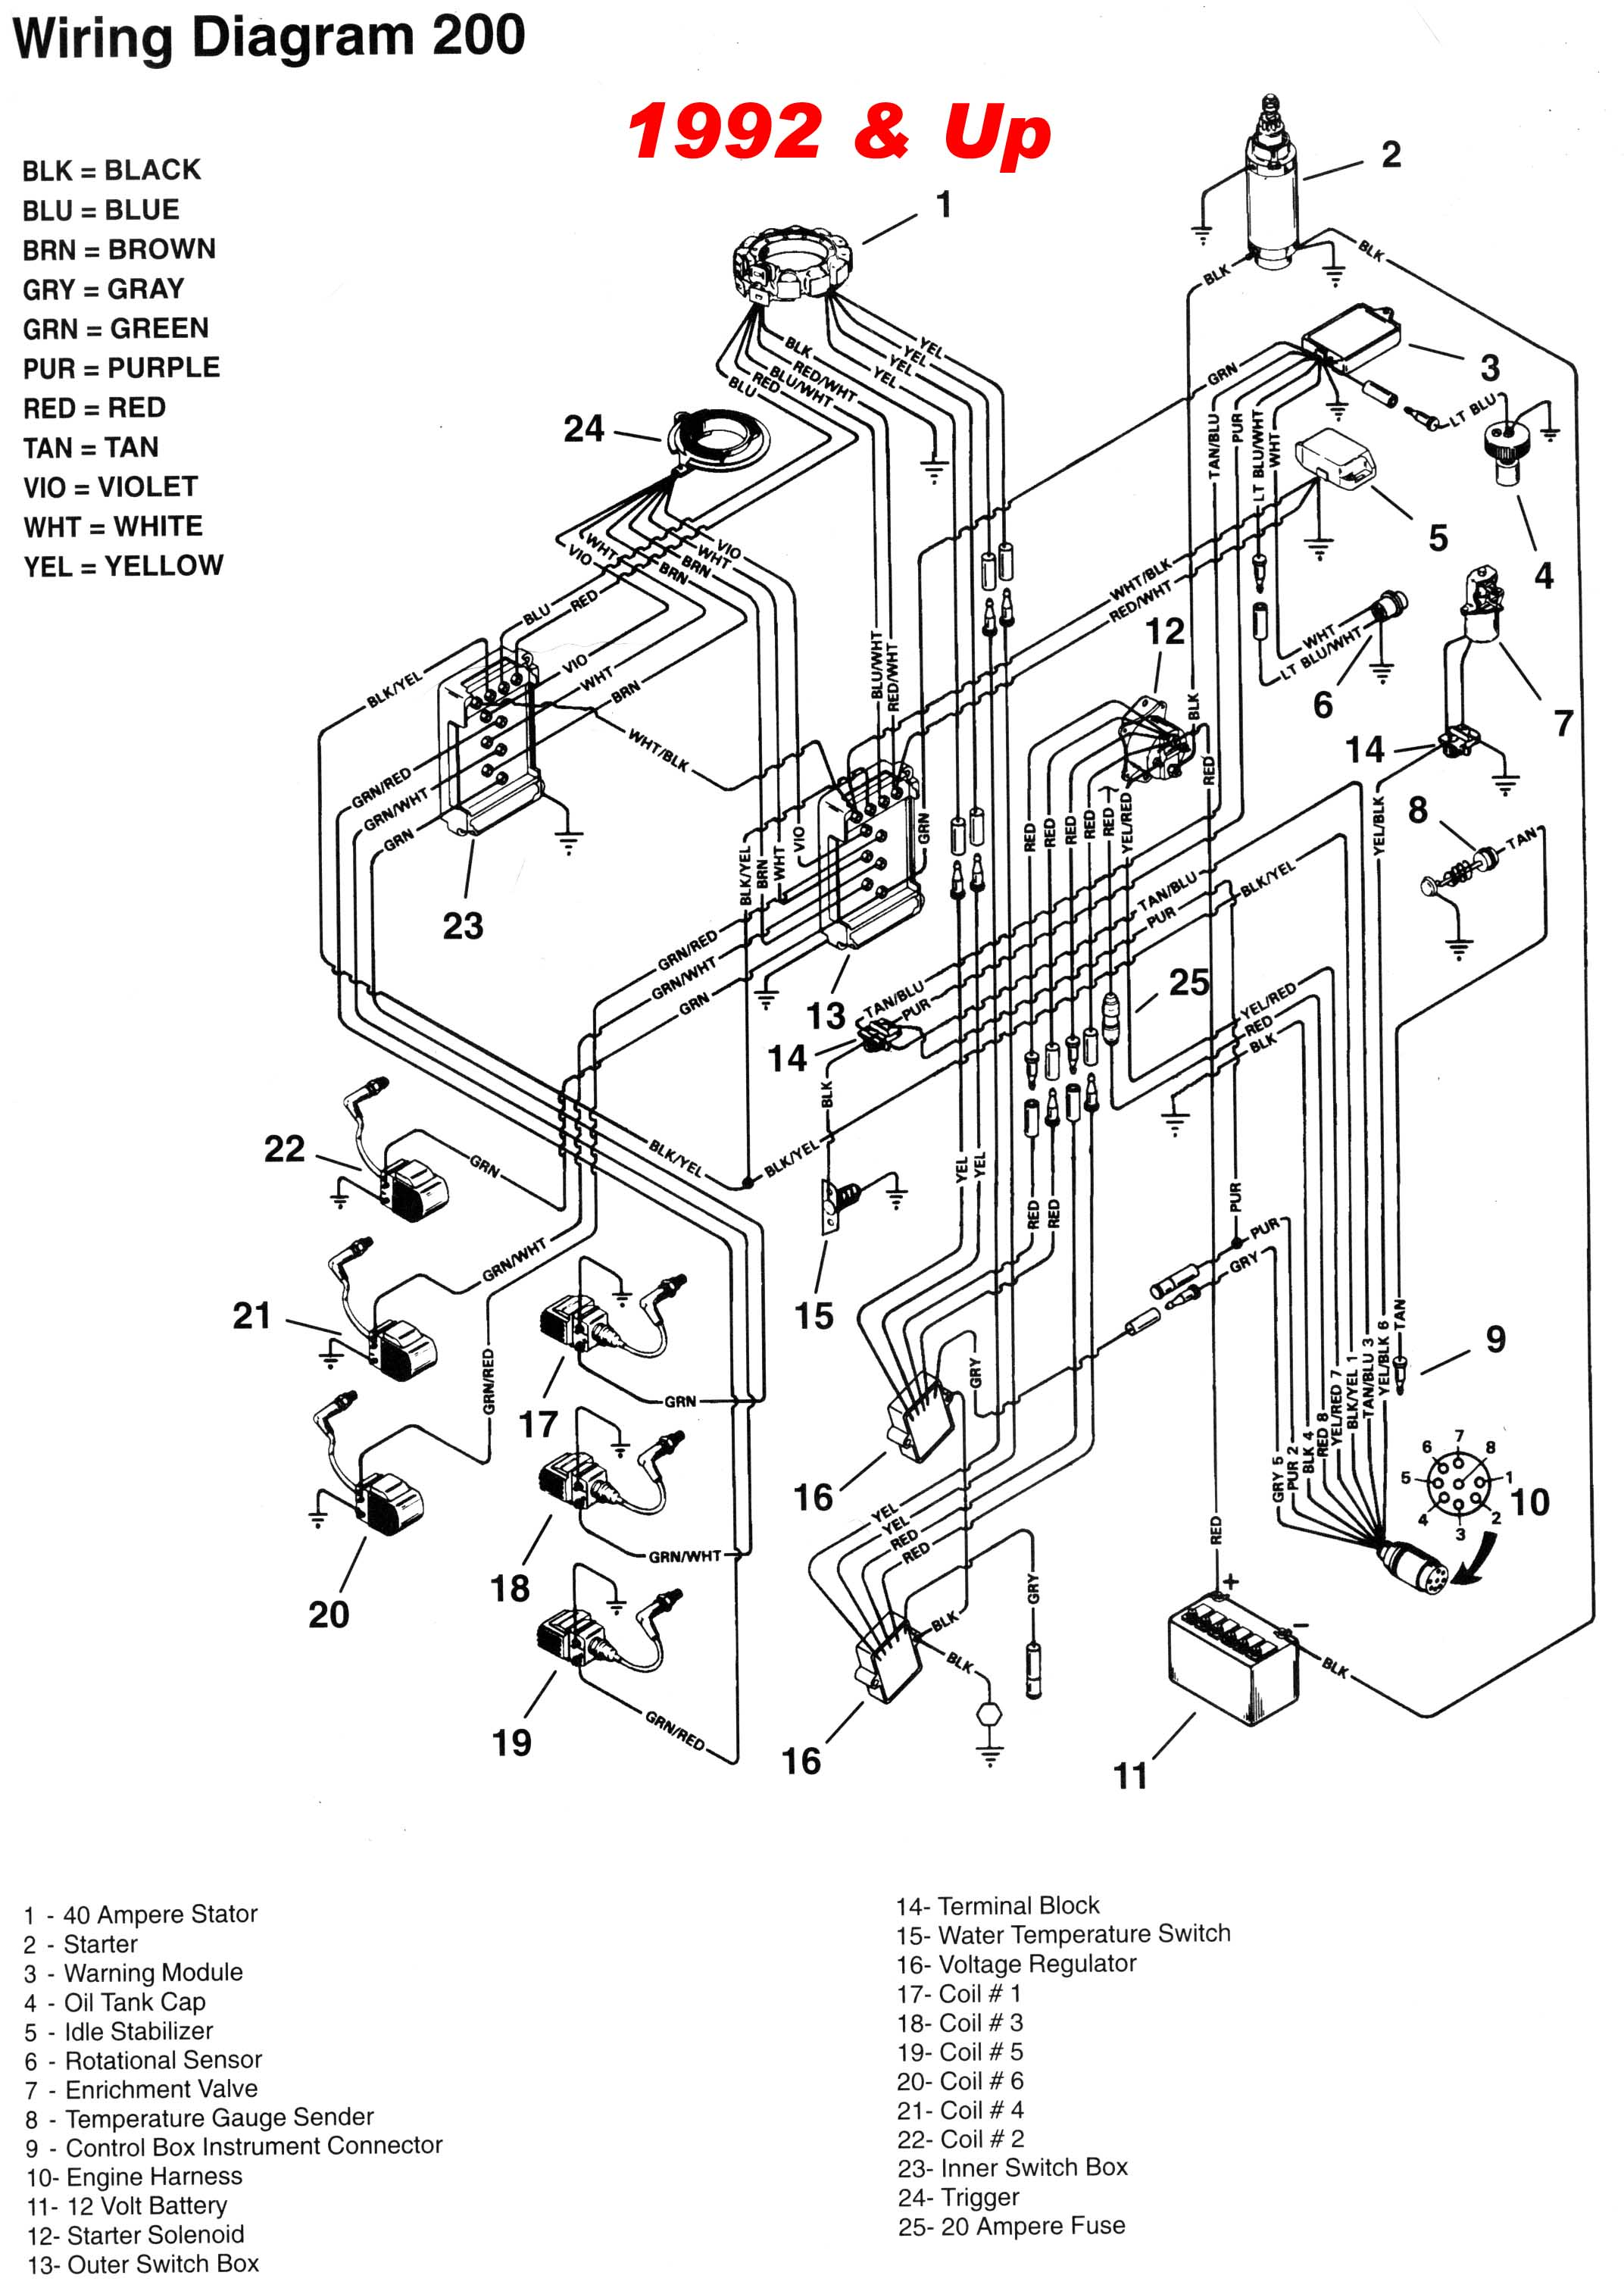 97 Chevy Engine Diagram 3 1 Liter also Coolant Temp Sensor Location 213371 further 614297 Pertronix Install Got Some Questions Need Help additionally Document further Vdo   Gauge Wiring Diagram. on marine tach wiring diagram